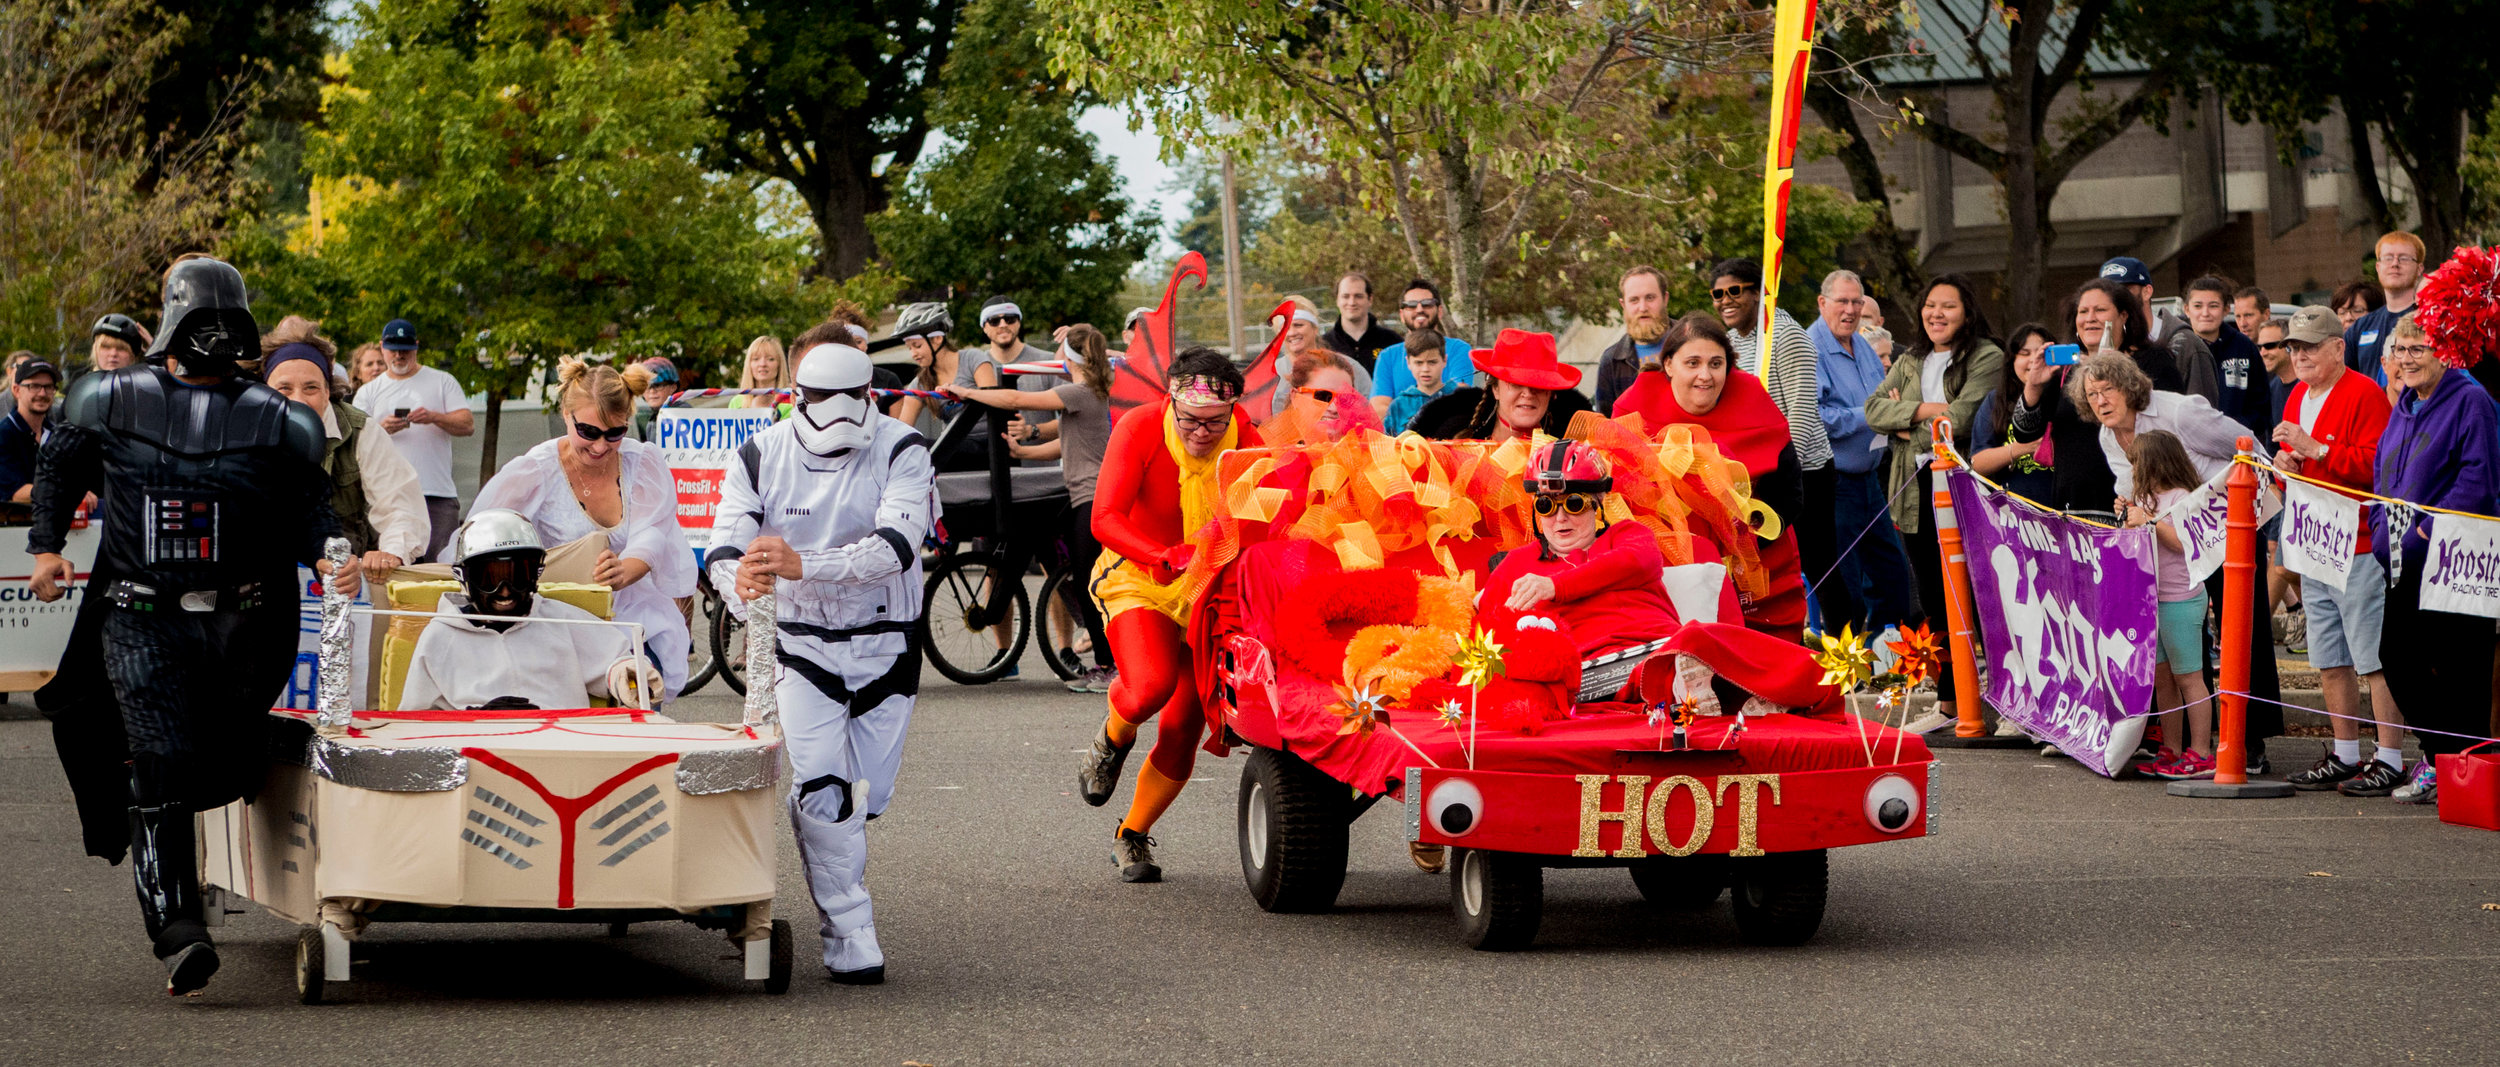 2017 Bed Race Star Wars VS Hot Team.jpg